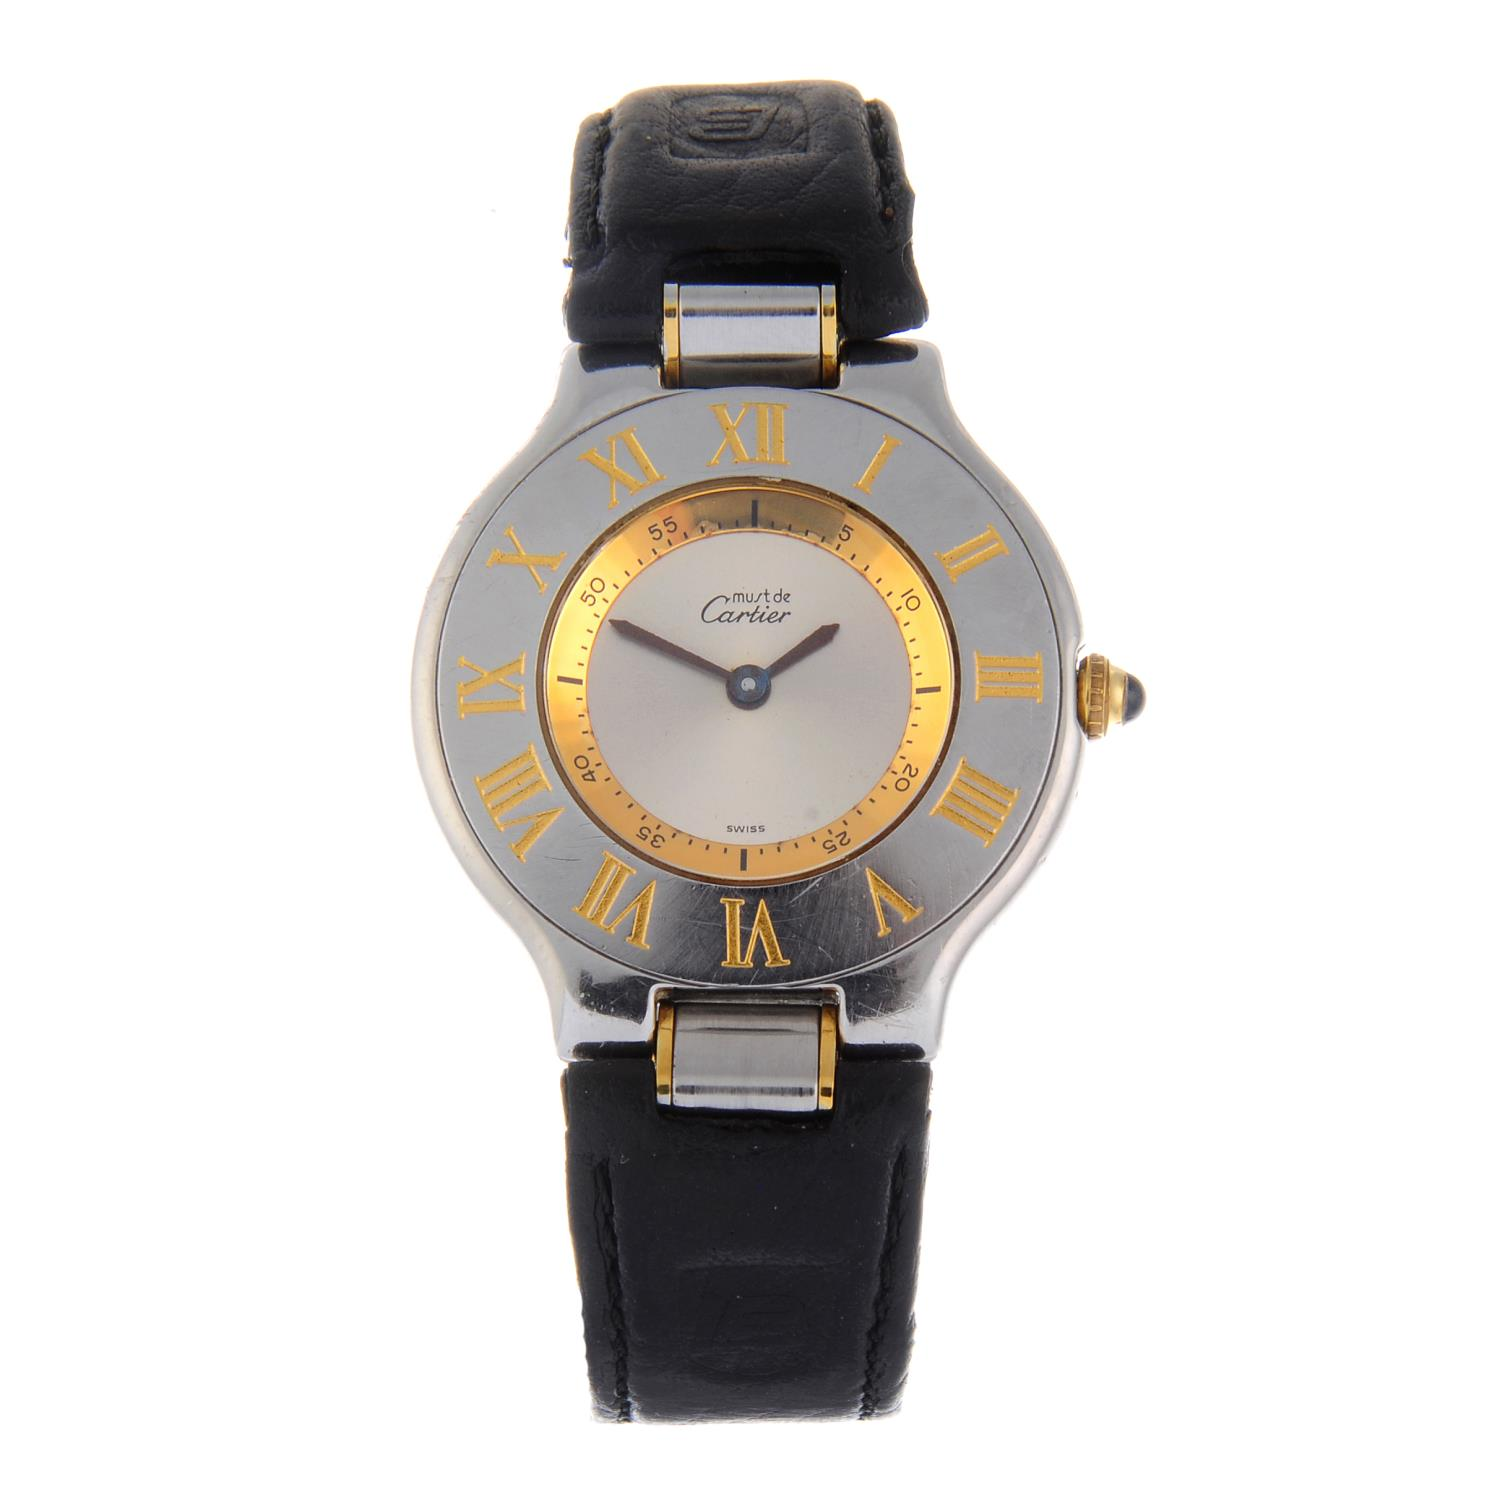 Lot 32 - CARTIER - a Must De Cartier 21 wrist watch.